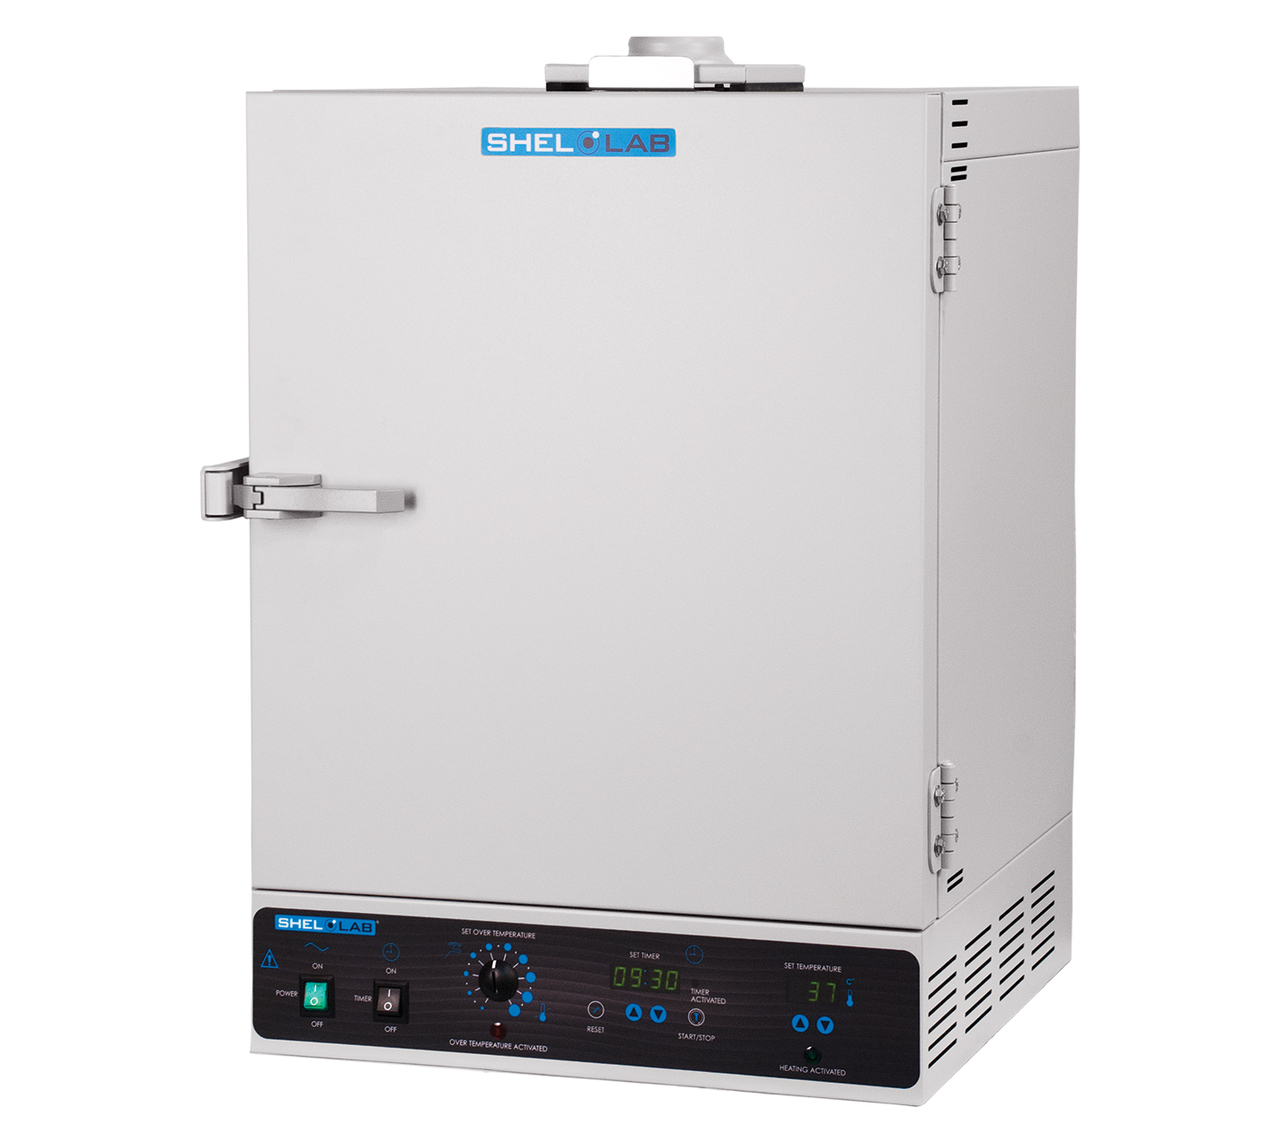 SMO1 Shel Lab Forced Air Oven - 1.39 Cu. Ft. (39.4 L)